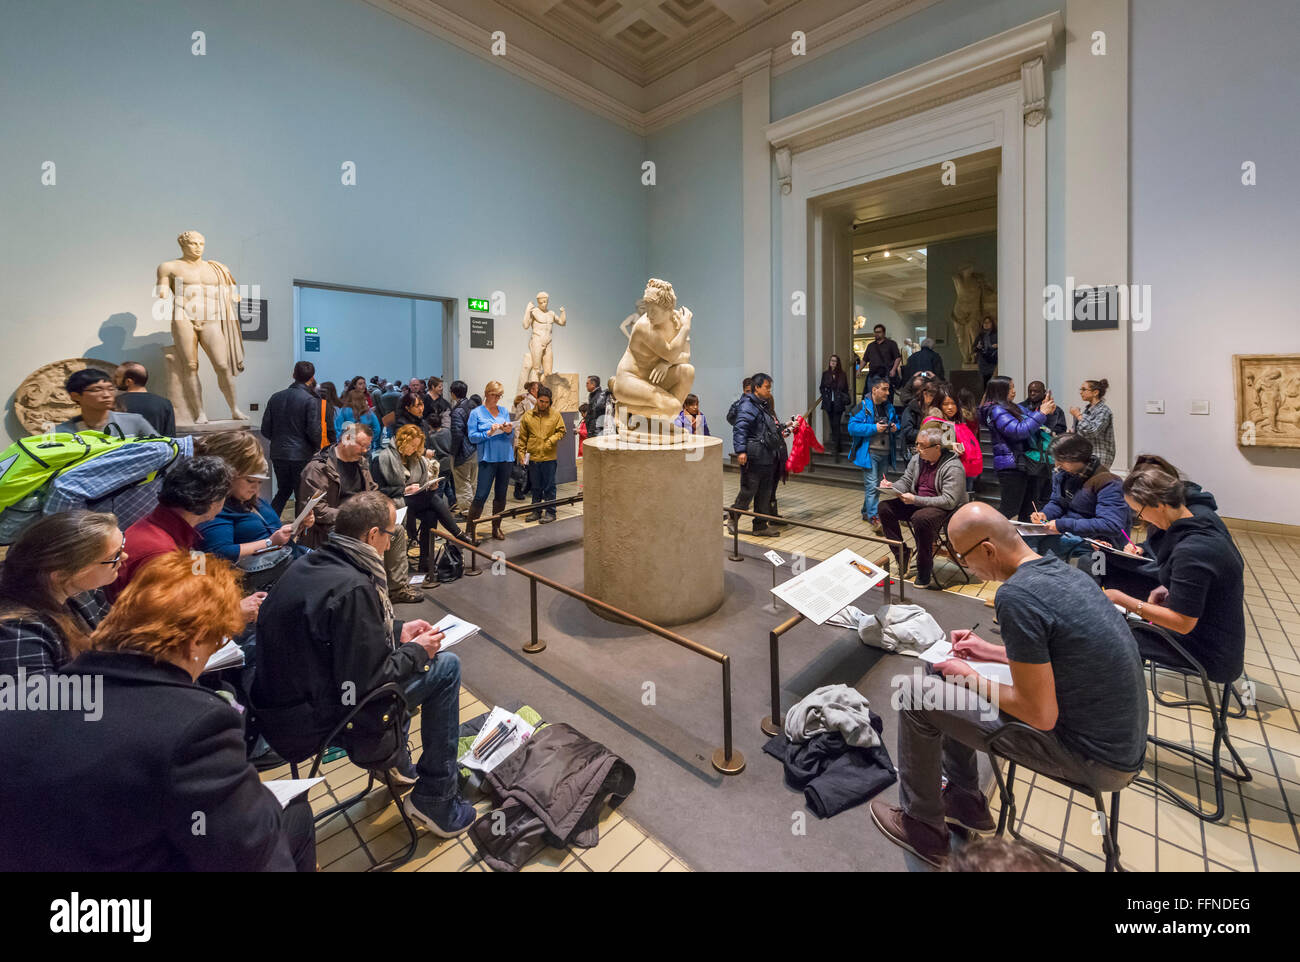 An art class in front of the Lely Venus in Gallery 23, Ancient Greece and Rome Galleries, British Museum, London, - Stock Image